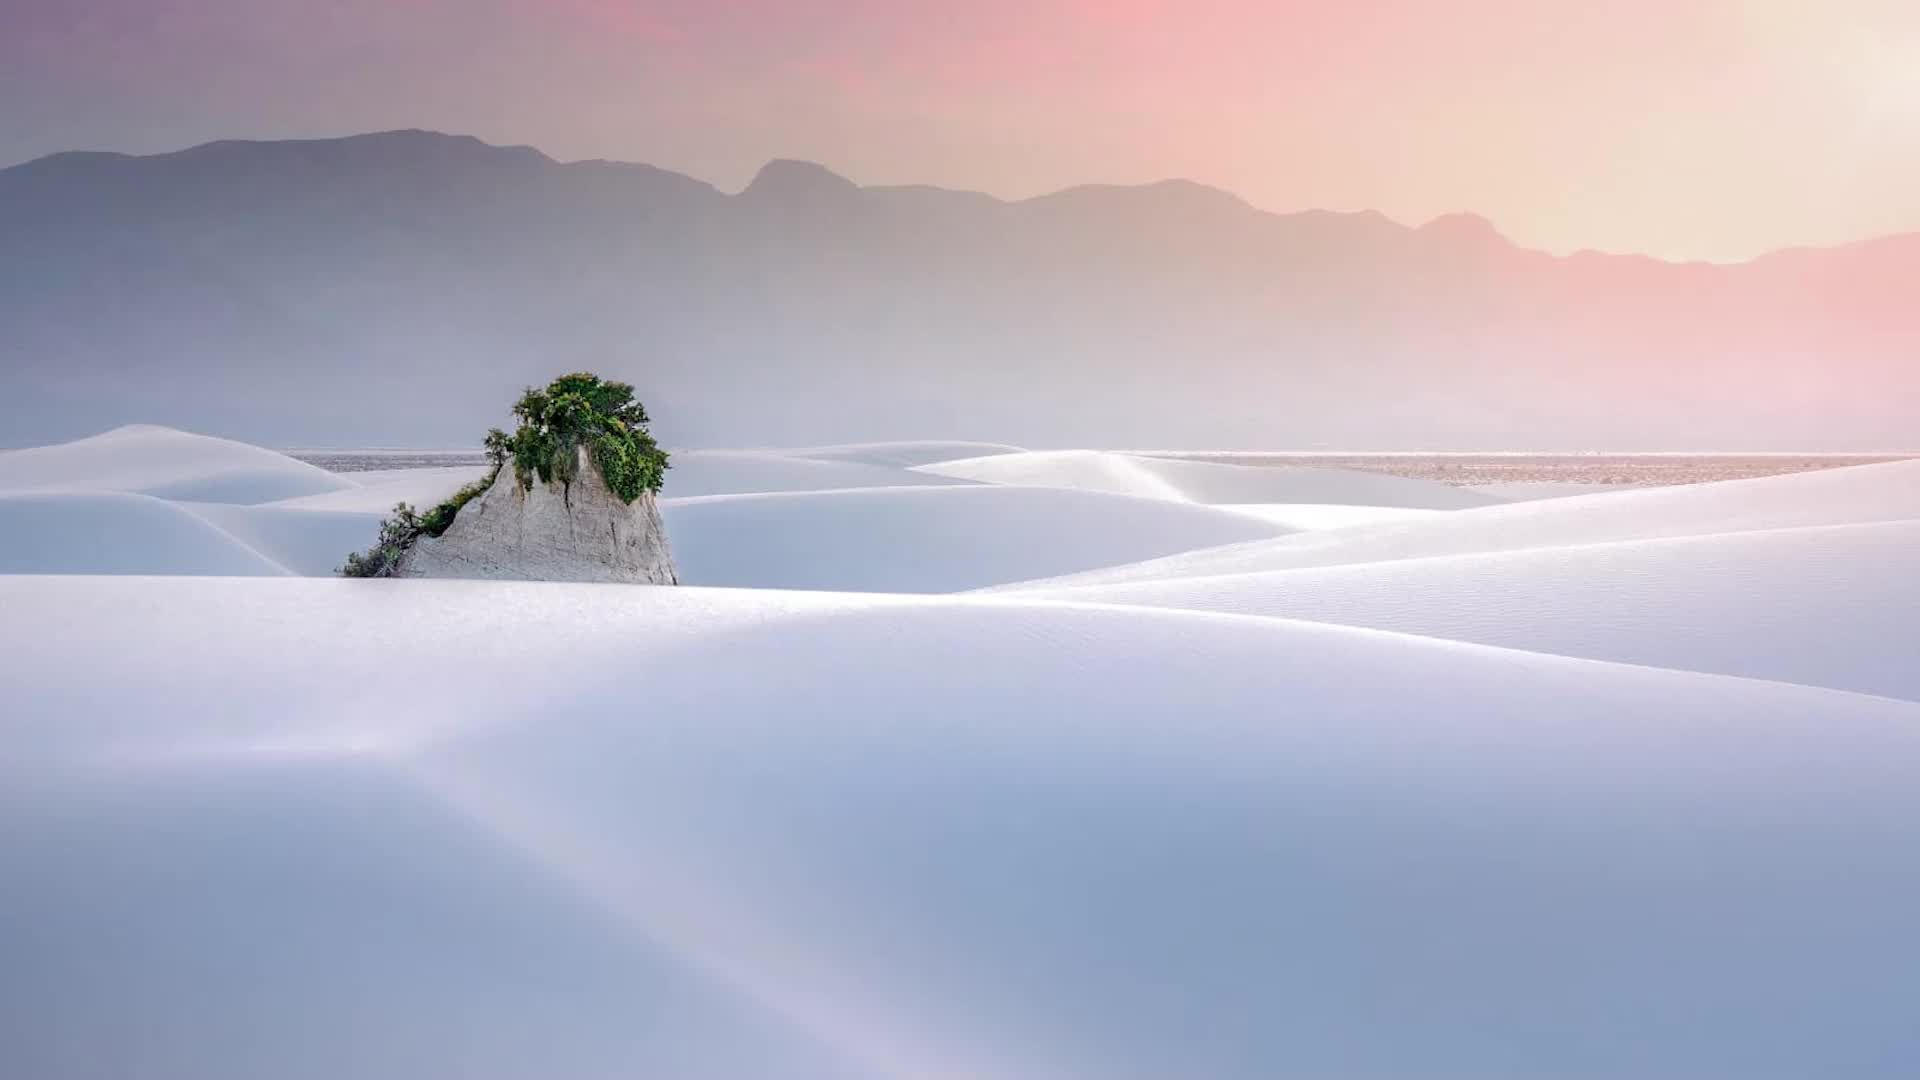 VÁMONOS: White Sands National Park